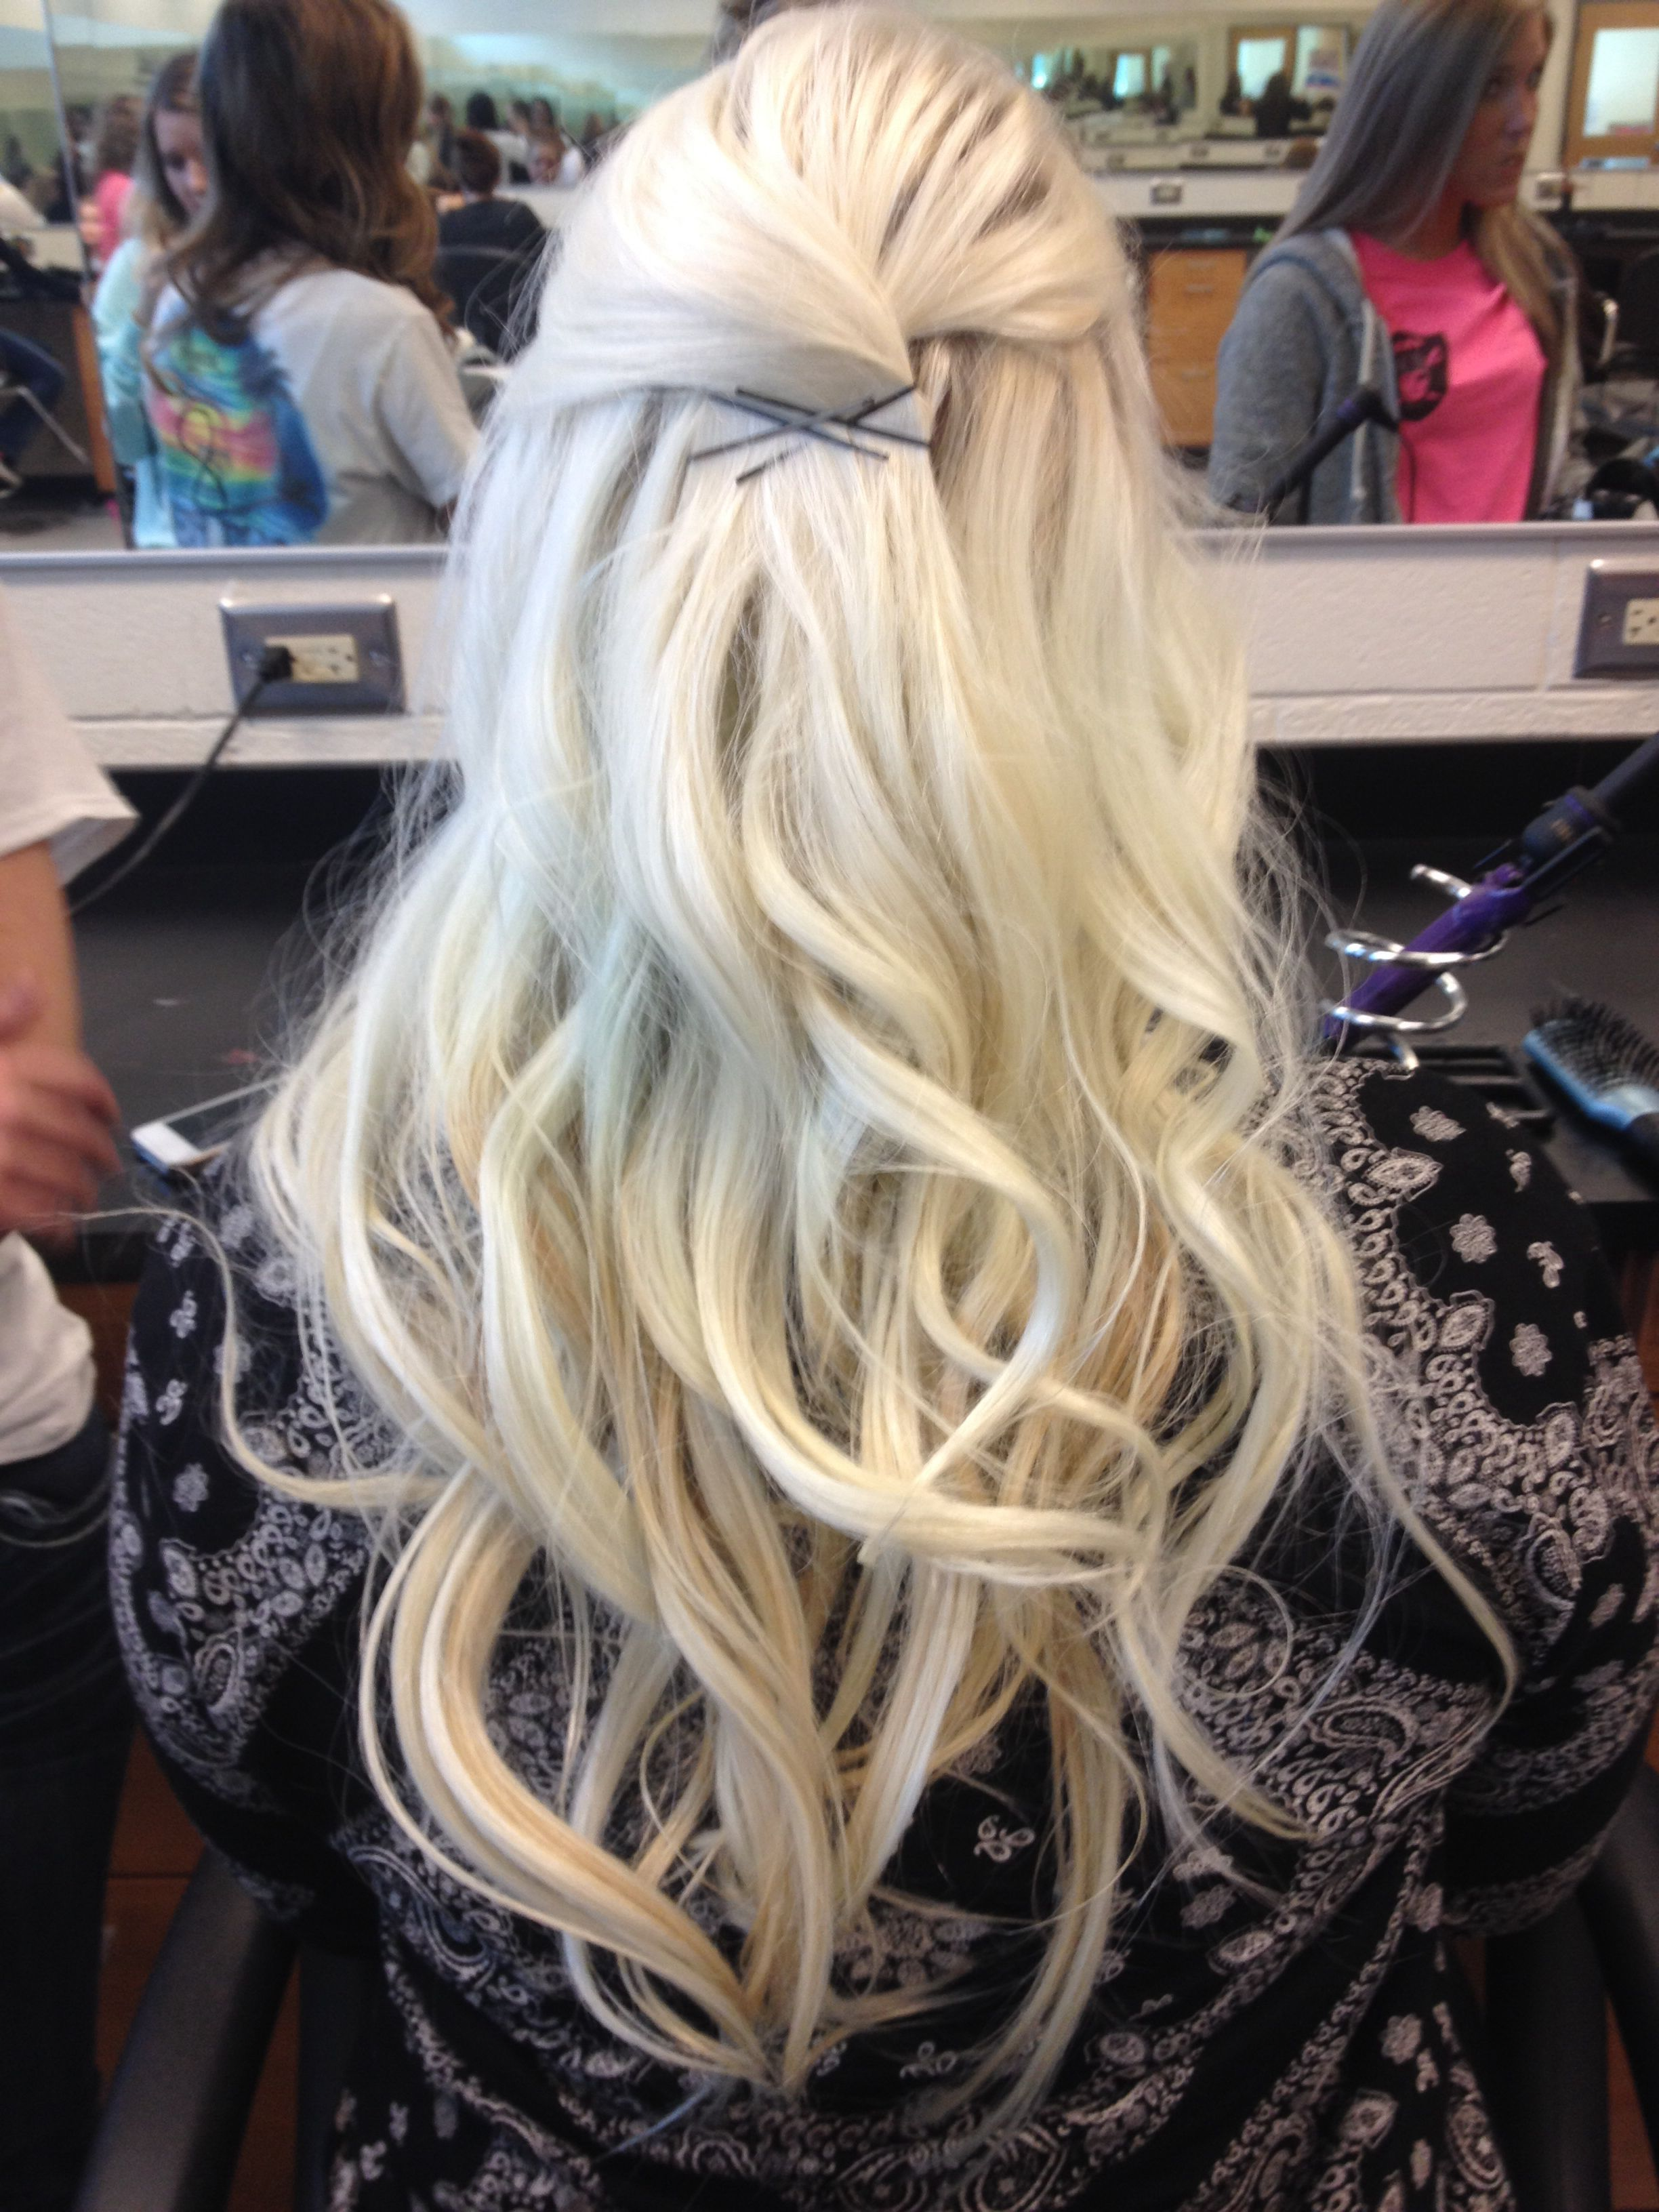 Curled my friend's bleach blonde hair ! | Hair & Fashion ...